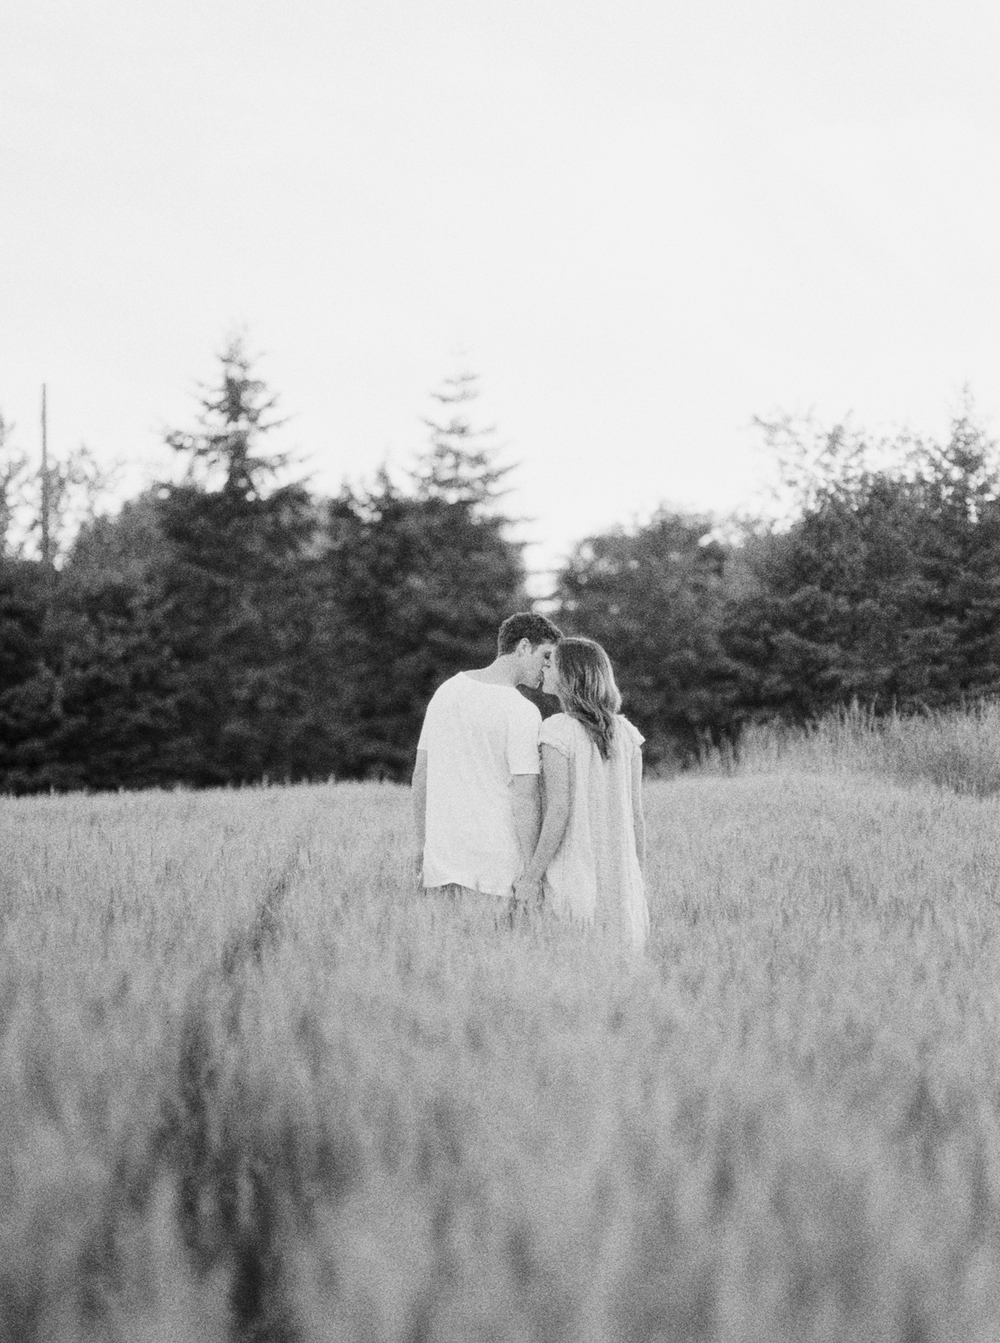 Katie-Nicolle-Niagara-Wedding-Photographer-Toronto-Muskoka-Film-52.jpg